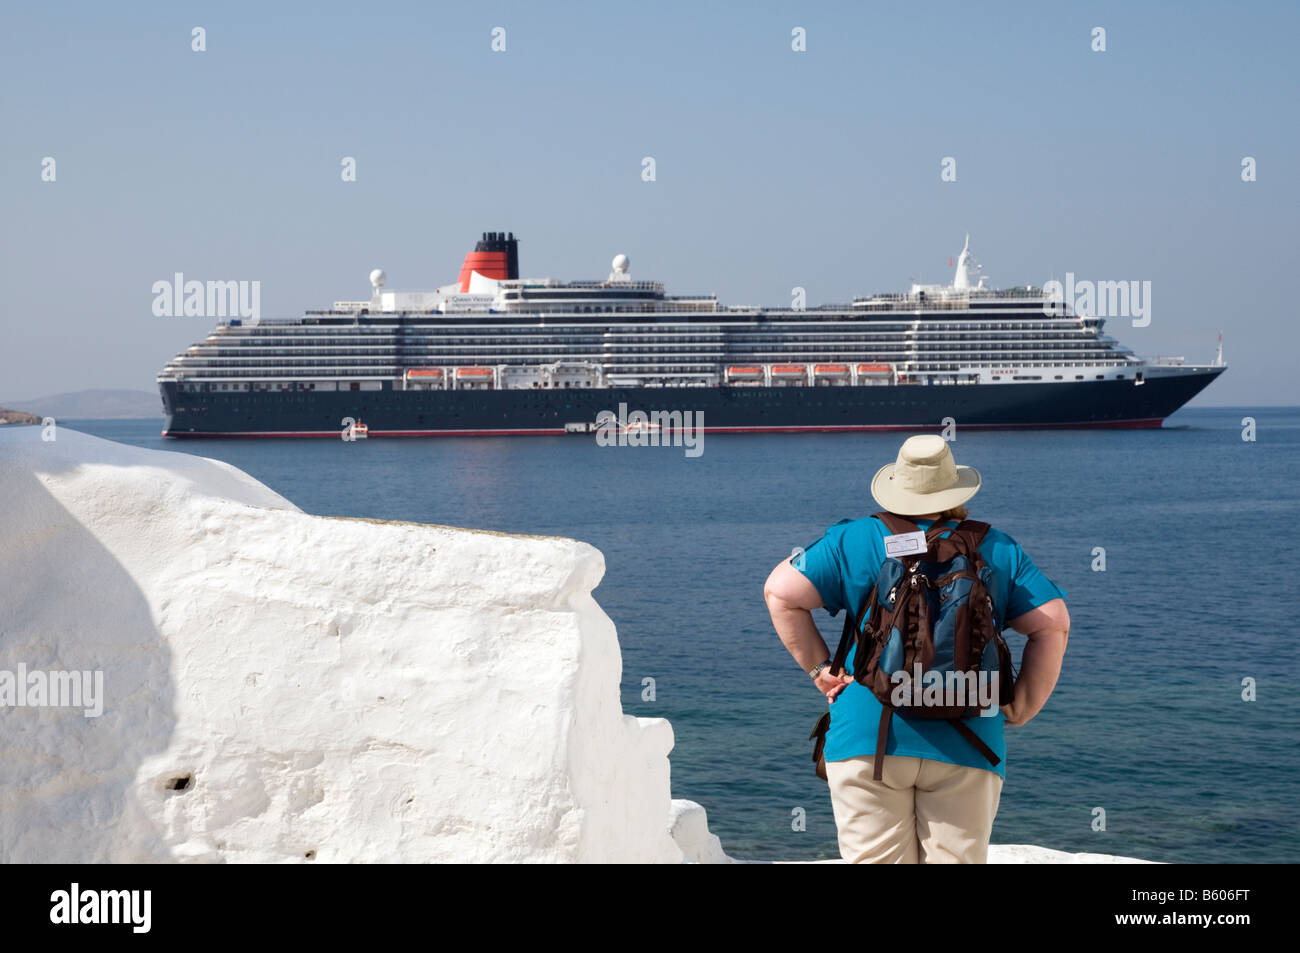 American tourists with Queen Victoria cruise ship in background on Mykonos, Greece - Stock Image